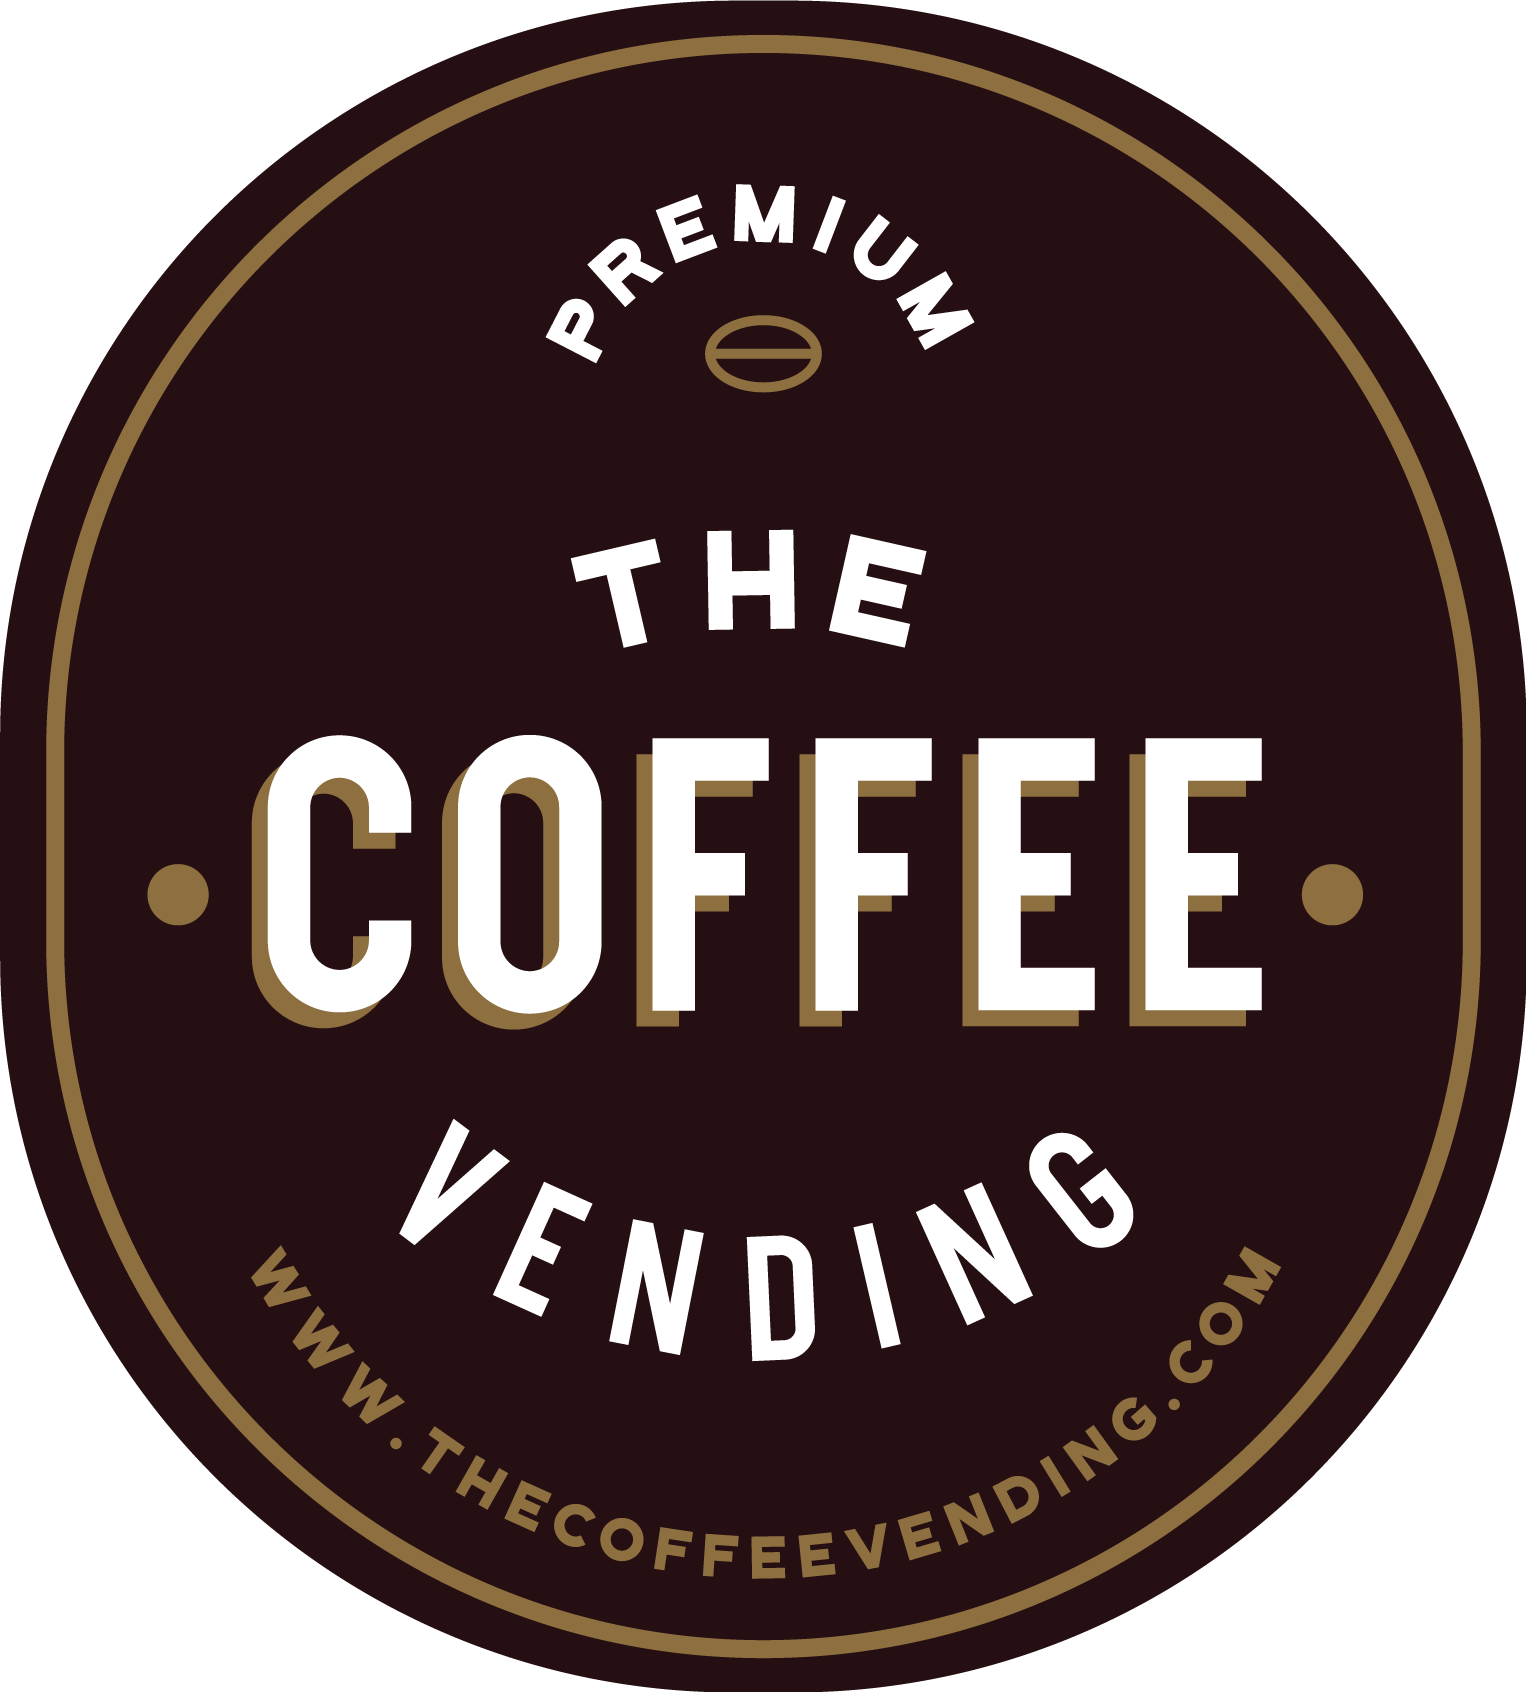 The Coffee Vending